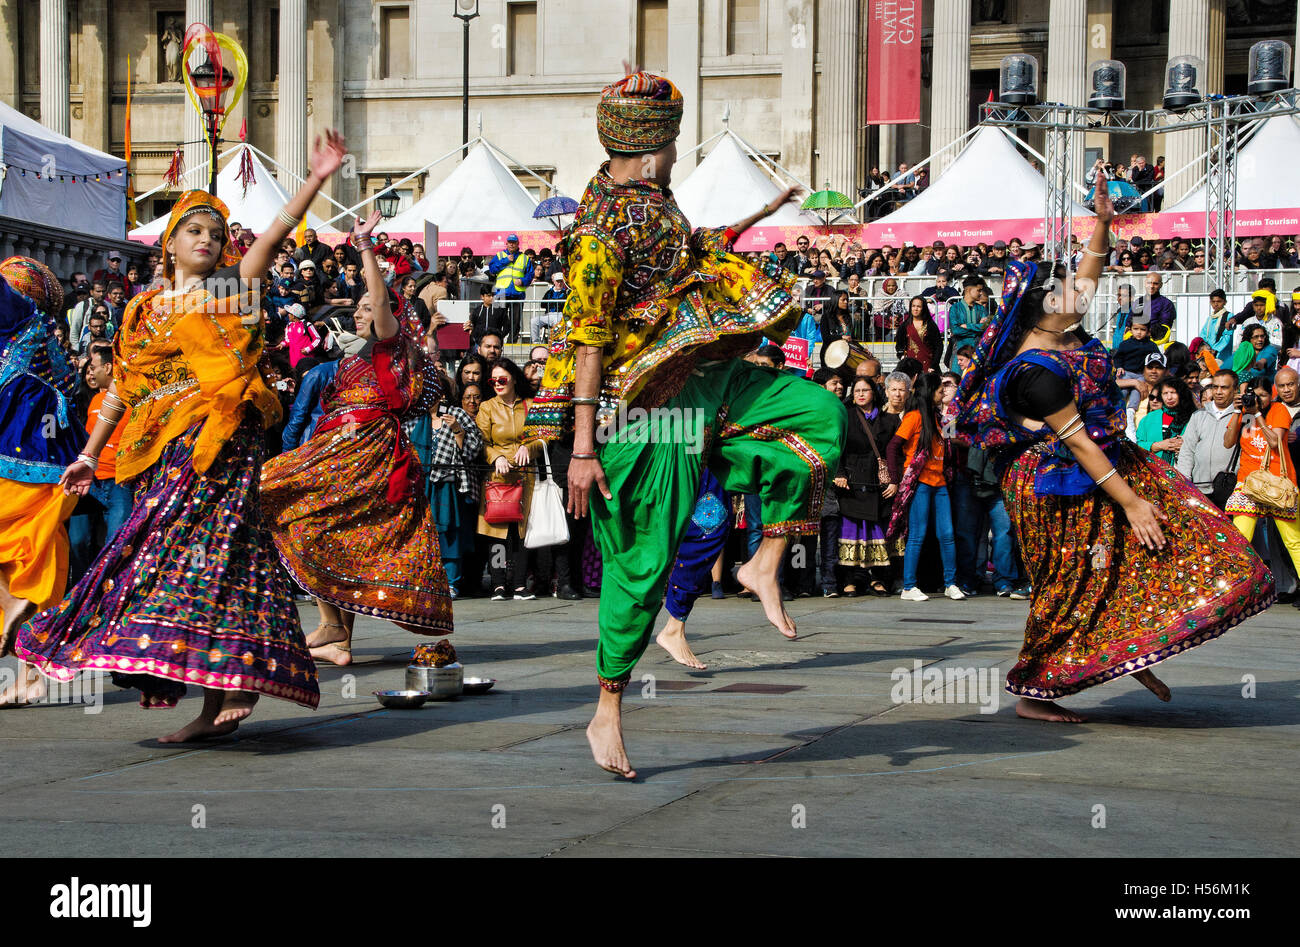 Annual Hindu Diwali festival of light in Trafalgar Square London - Stock Image